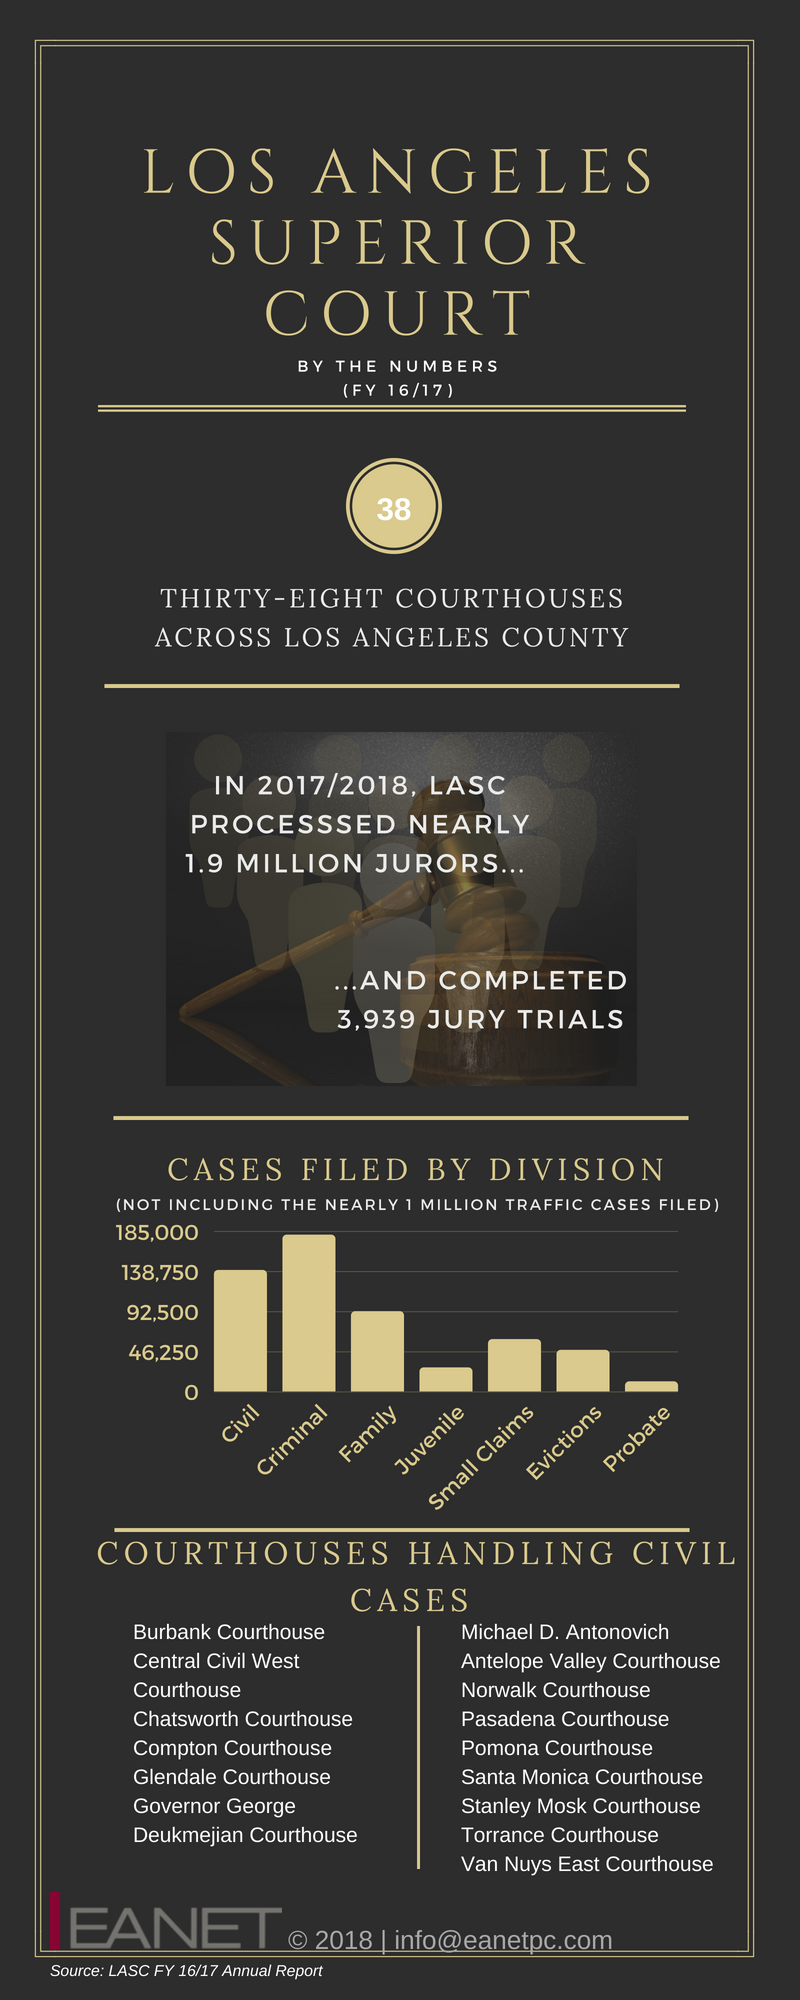 LOS ANGELES SUPERIOR COURT BY THE NUMBERS (2).png